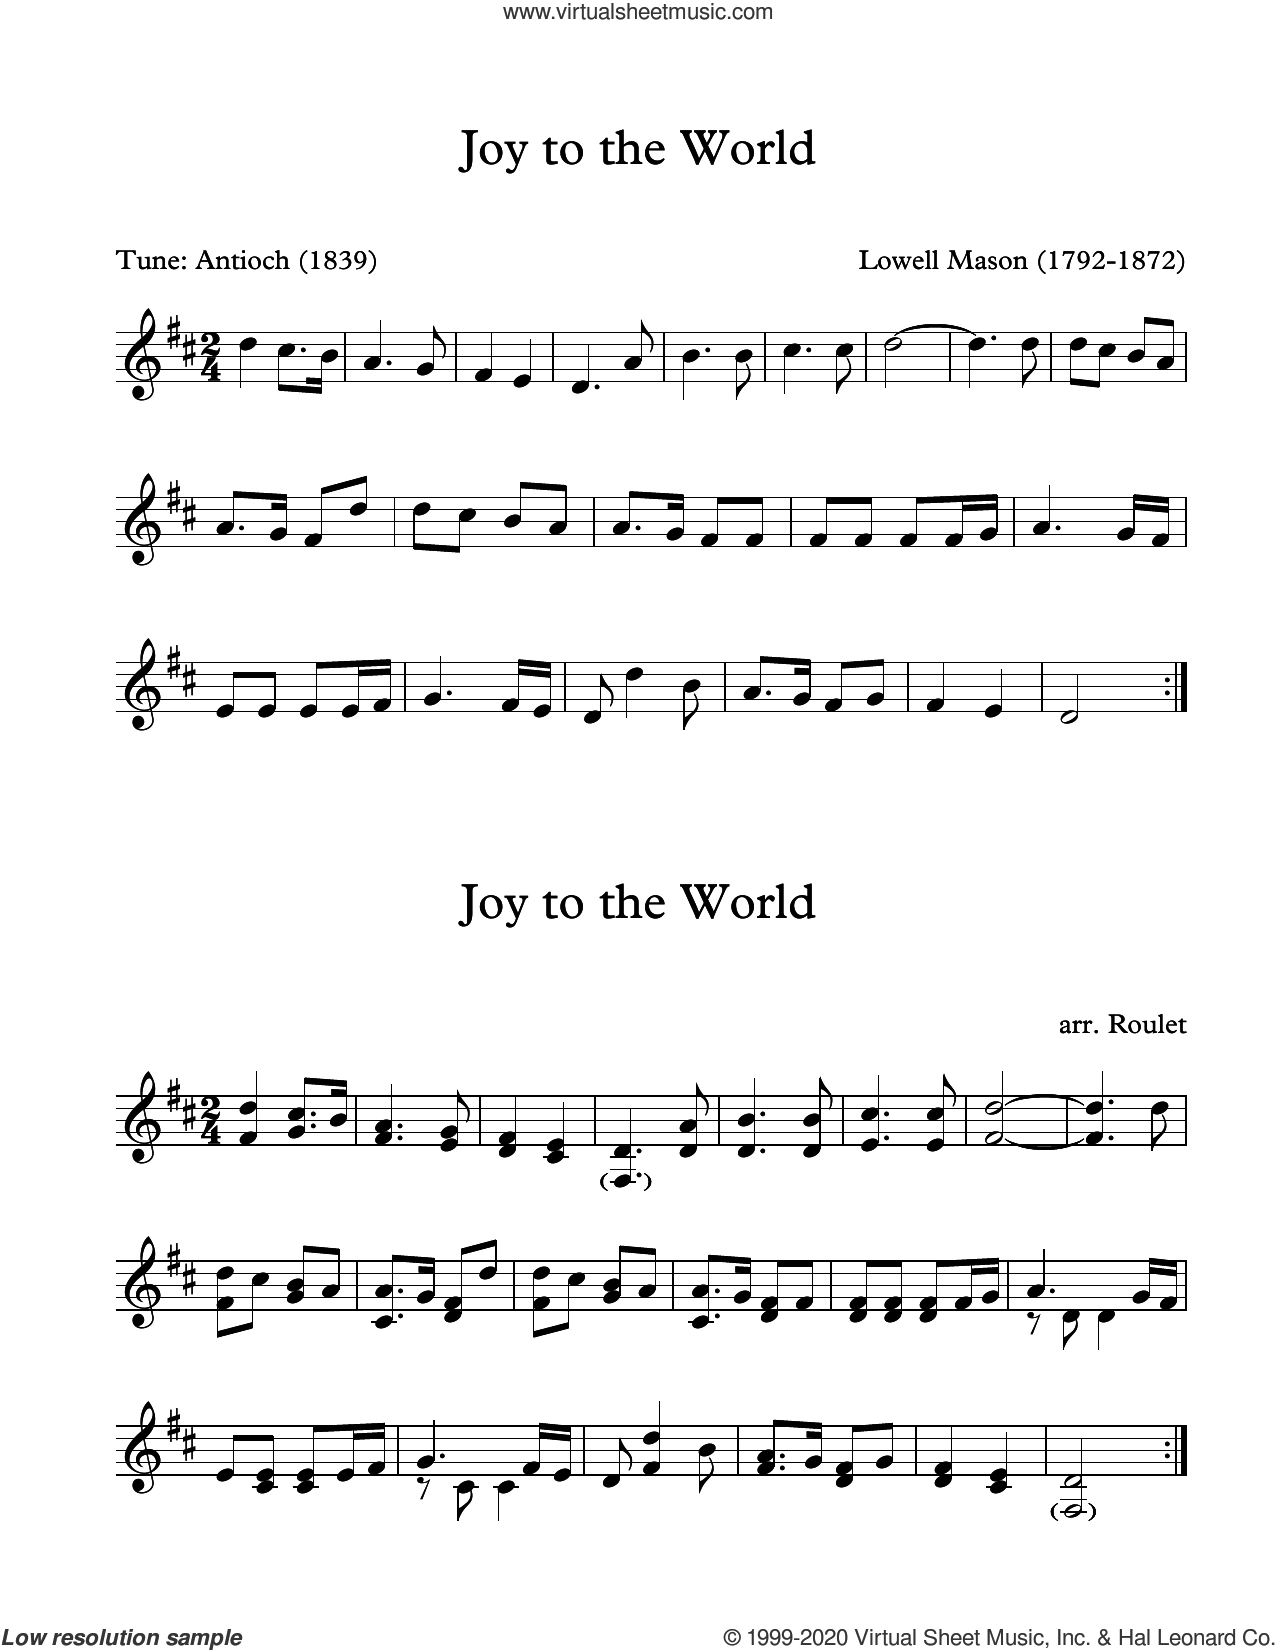 Joy To The World (arr. Patrick Roulet) sheet music for Marimba Solo by Lowell Mason and Patrick Roulet, intermediate skill level